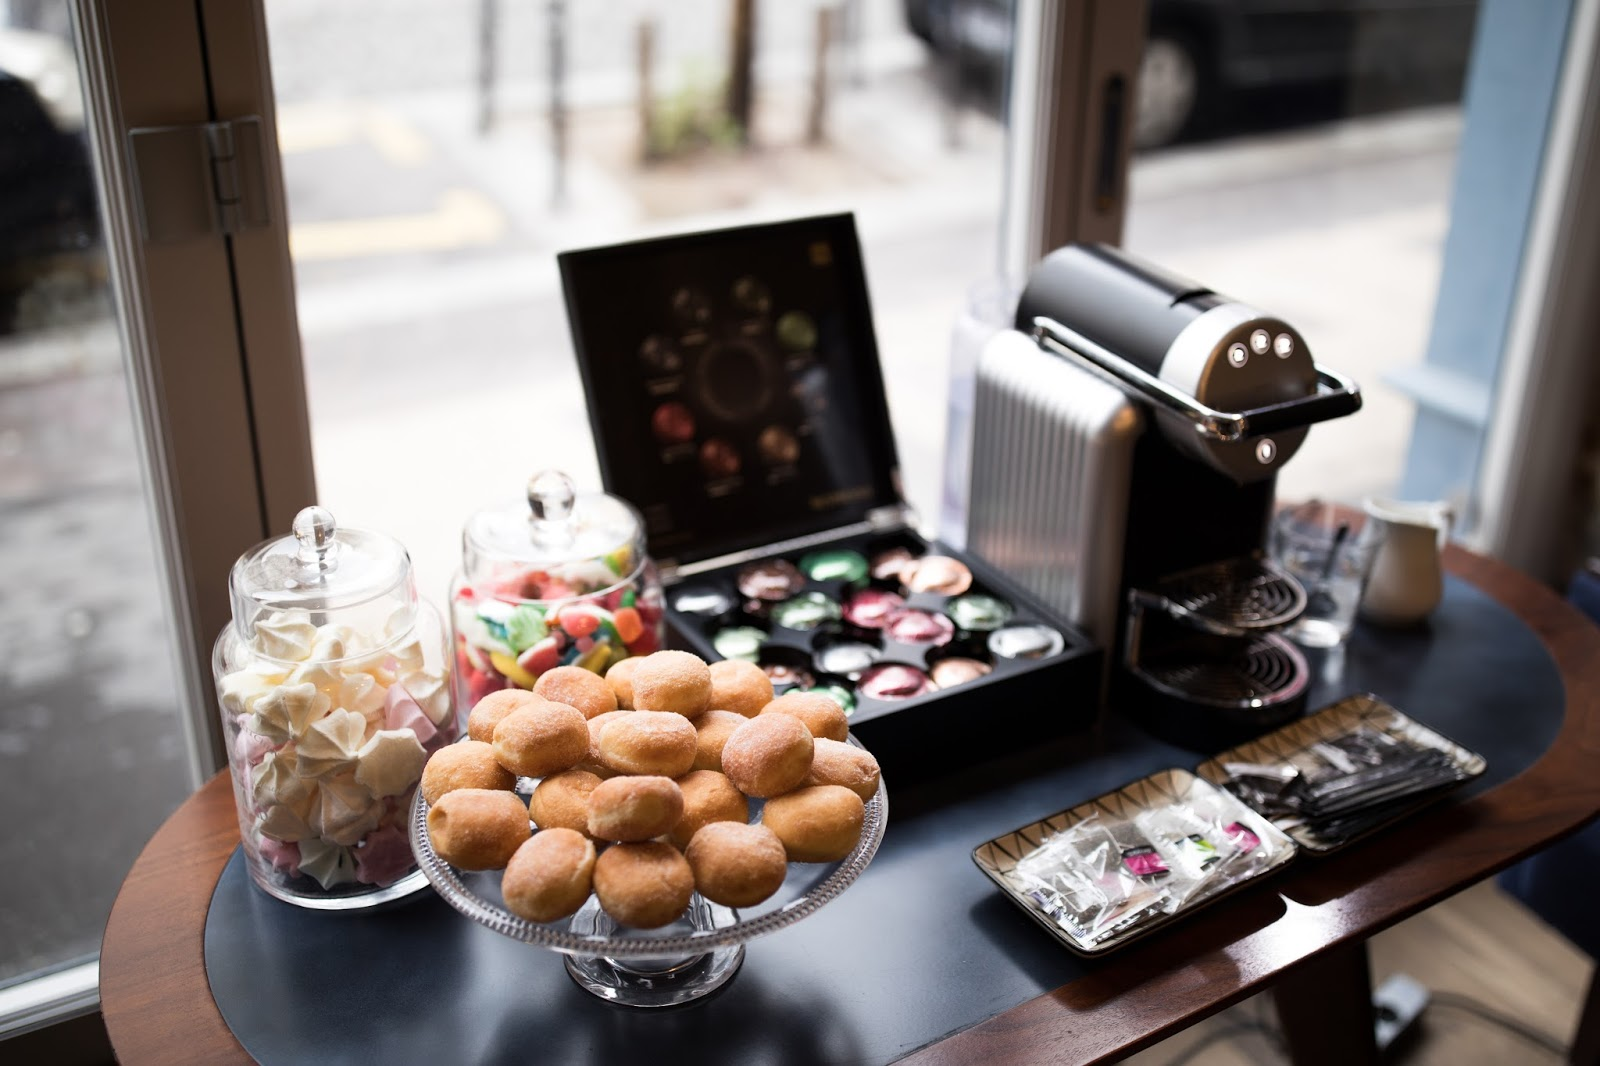 hotel basss by happyculture paris lobby sweets